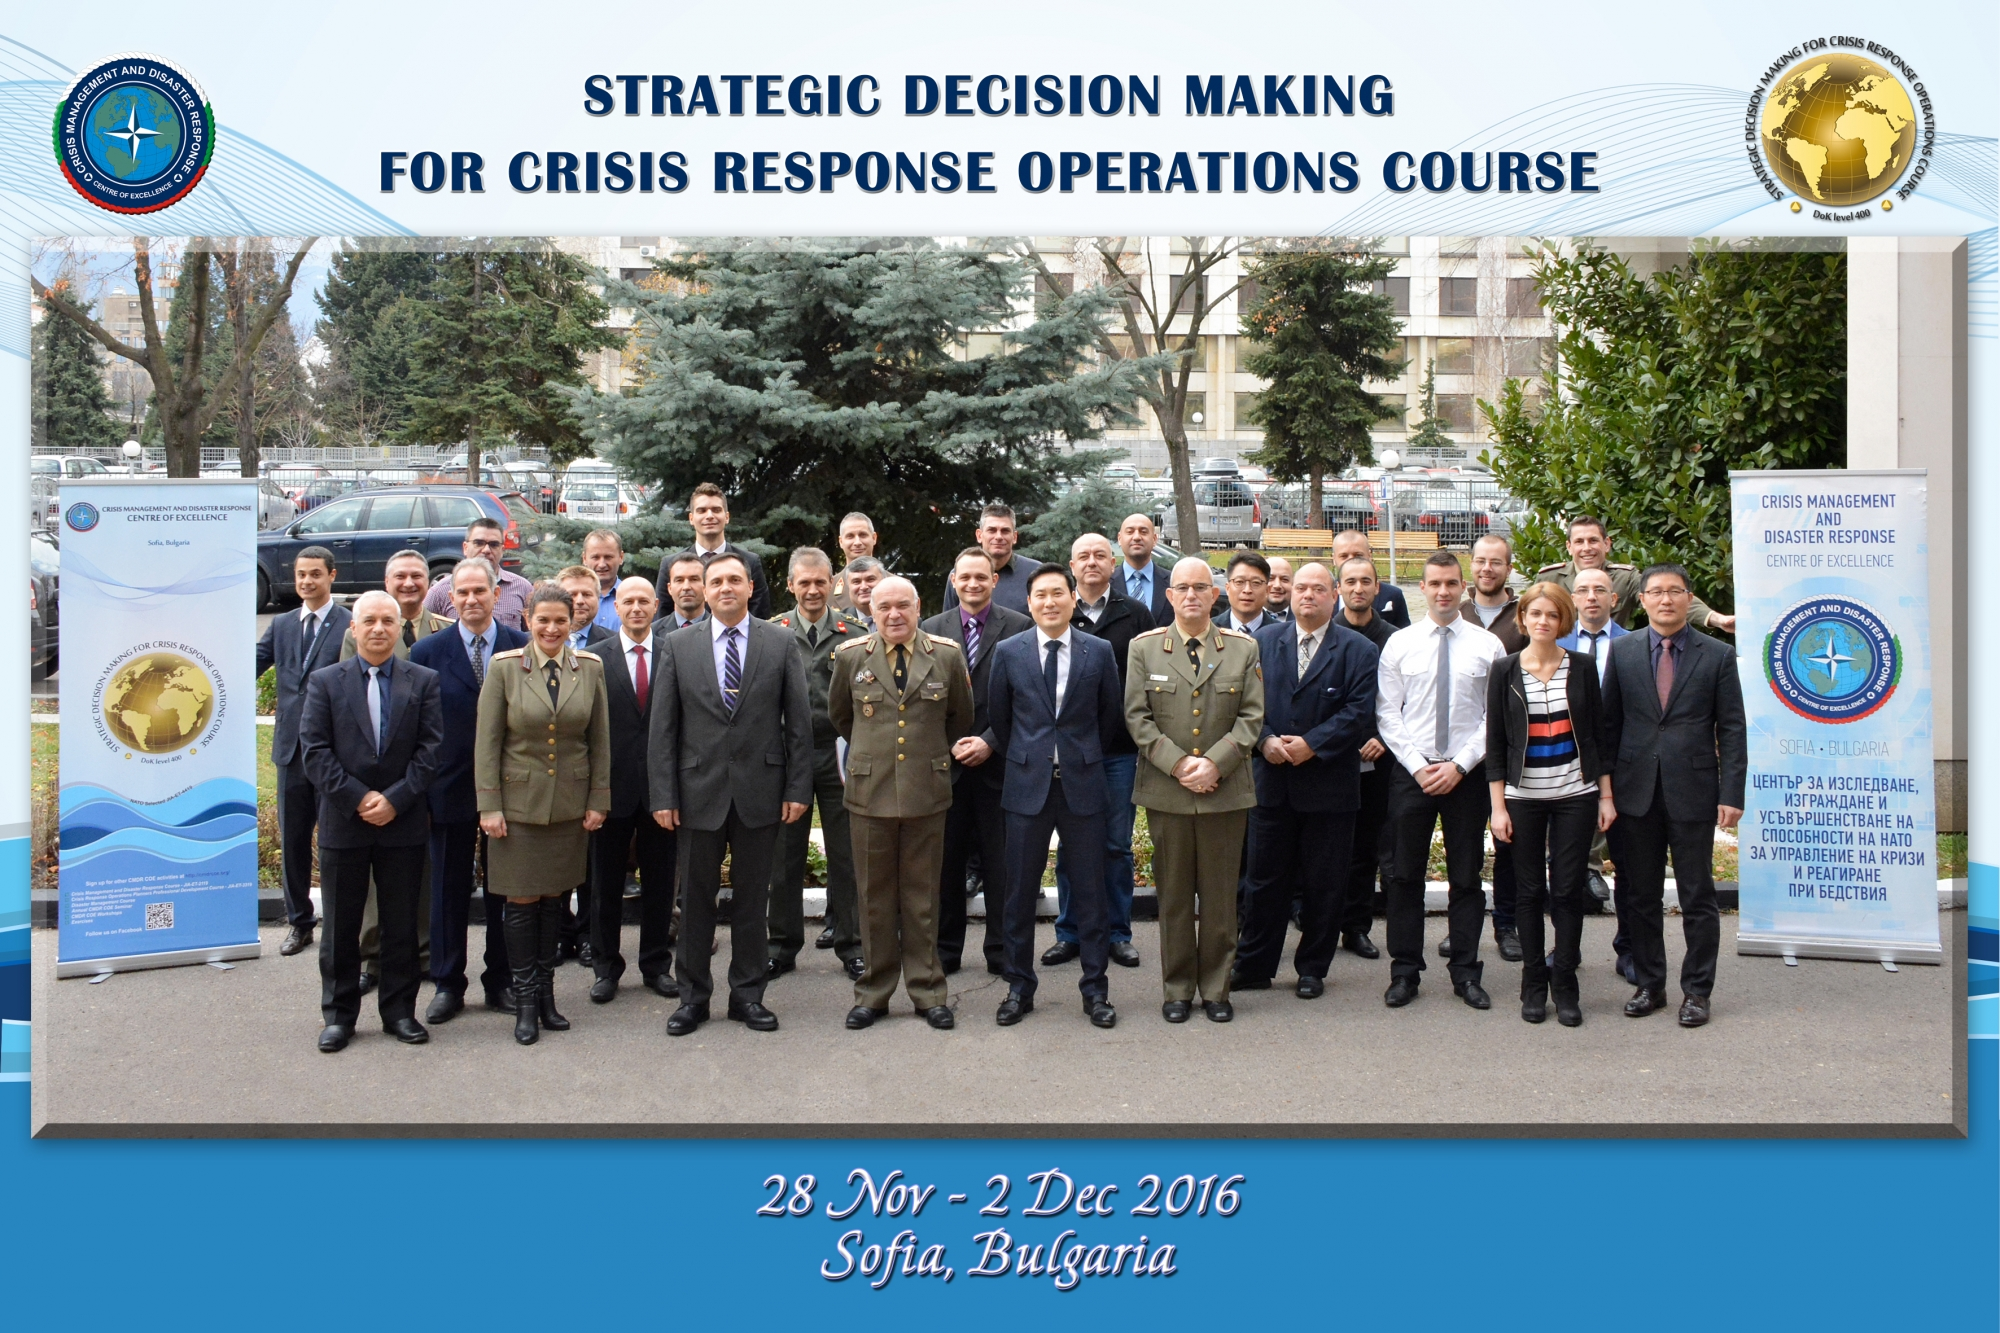 Strategic Decision Making for Crisis Response Operations Course draws to a close